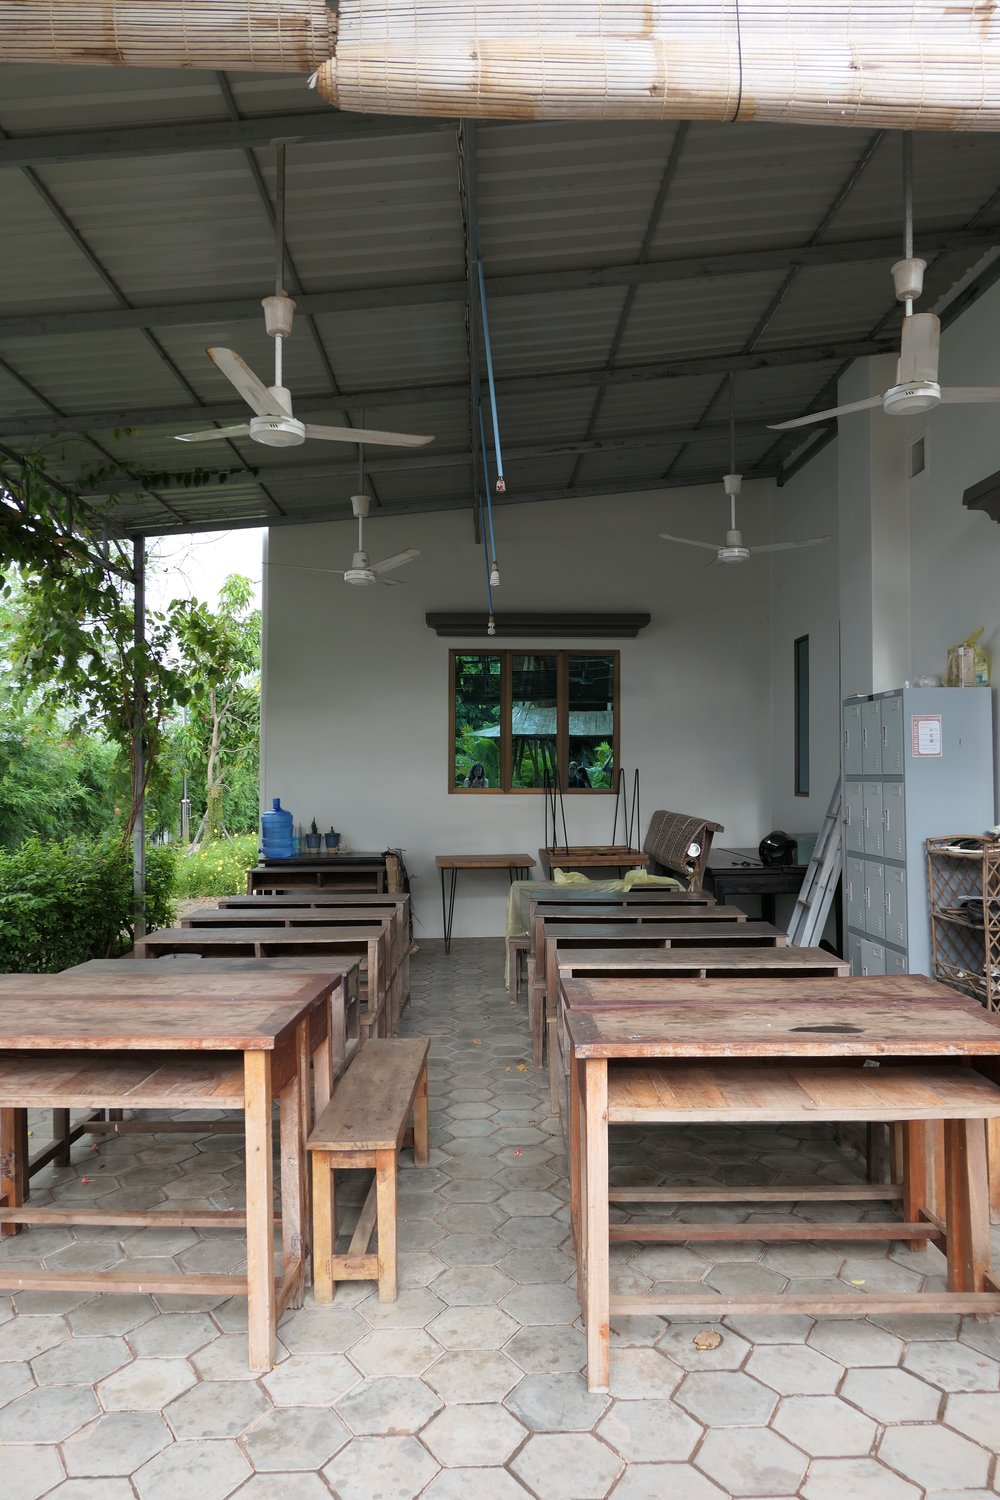 An eco-friendly and highly versatile outdoor classroom at EGBOK Mission in Siem Reap. Only takes a few minutes to set up, move around or stow away.